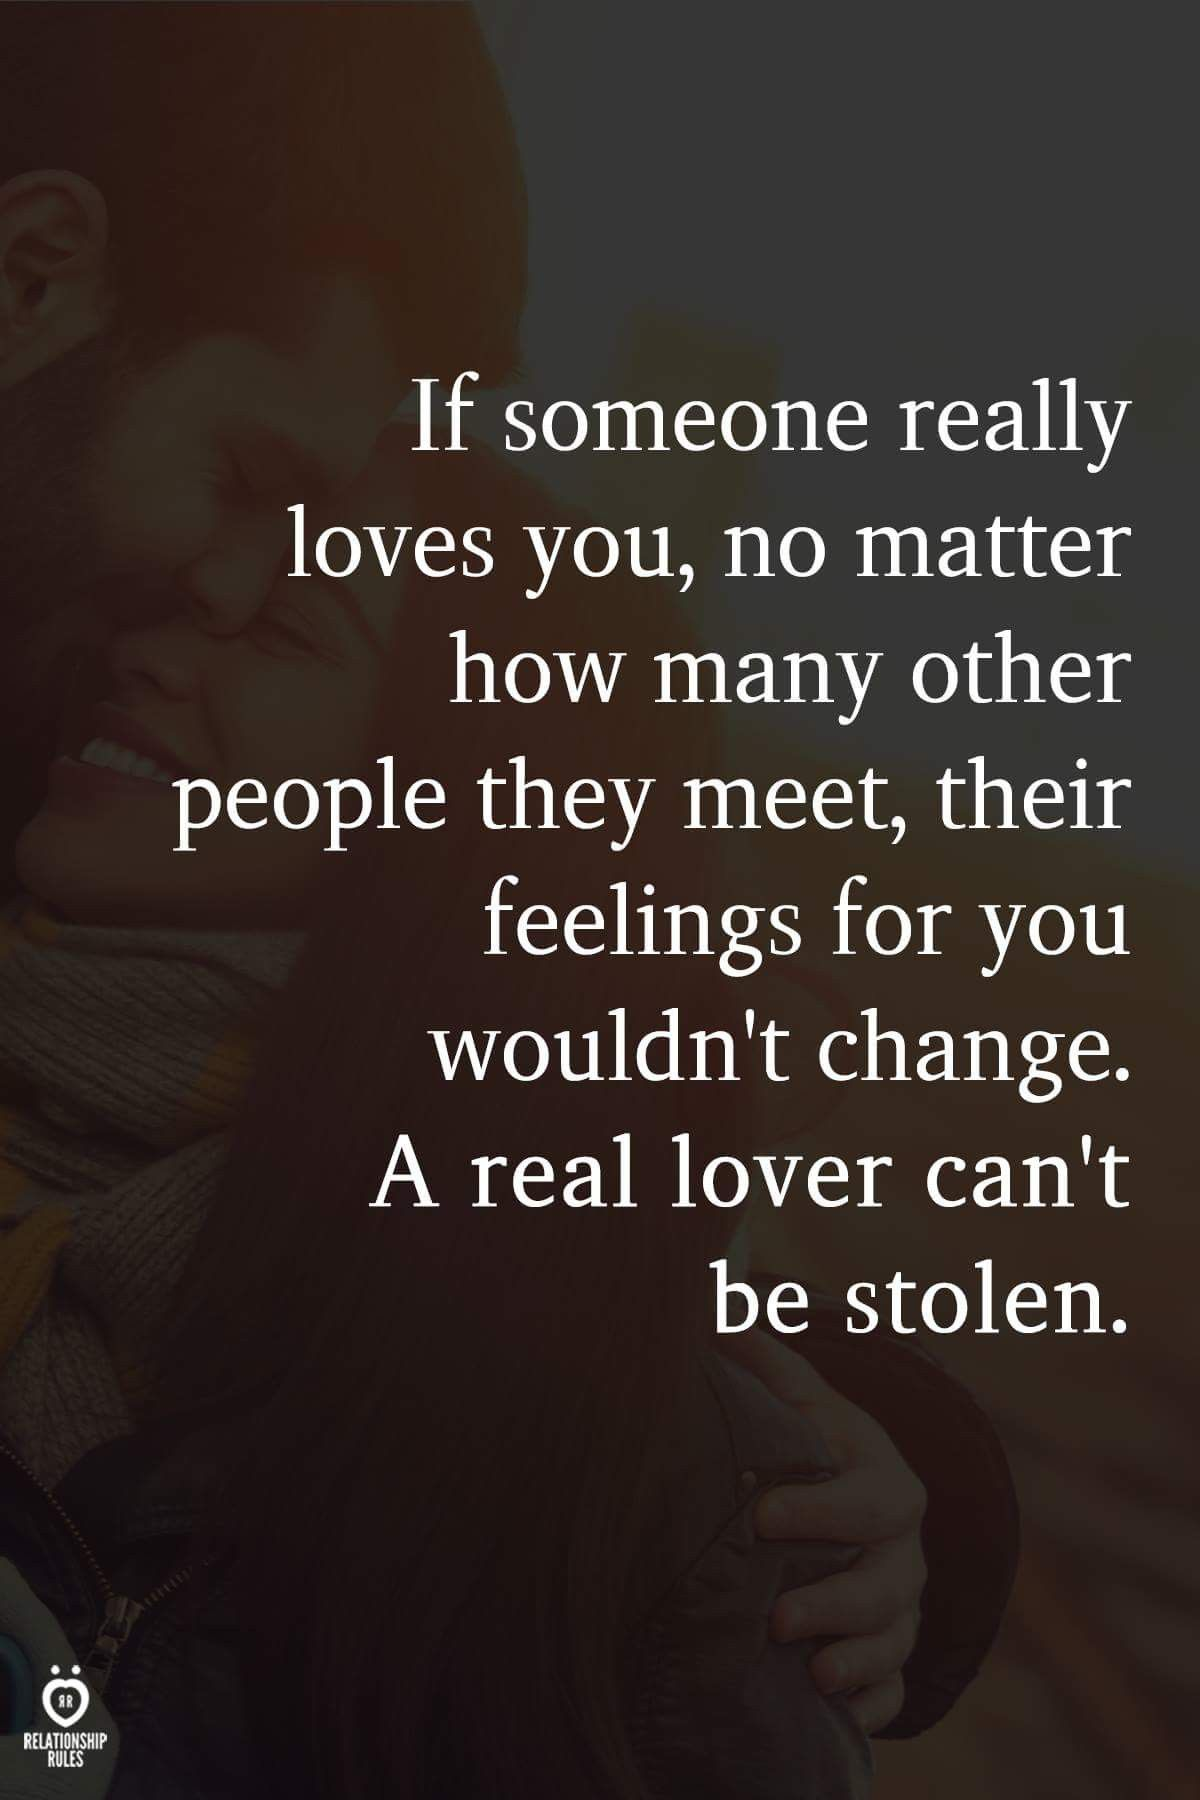 Pin by Tina Marie on relationship rules quotes Pinterest